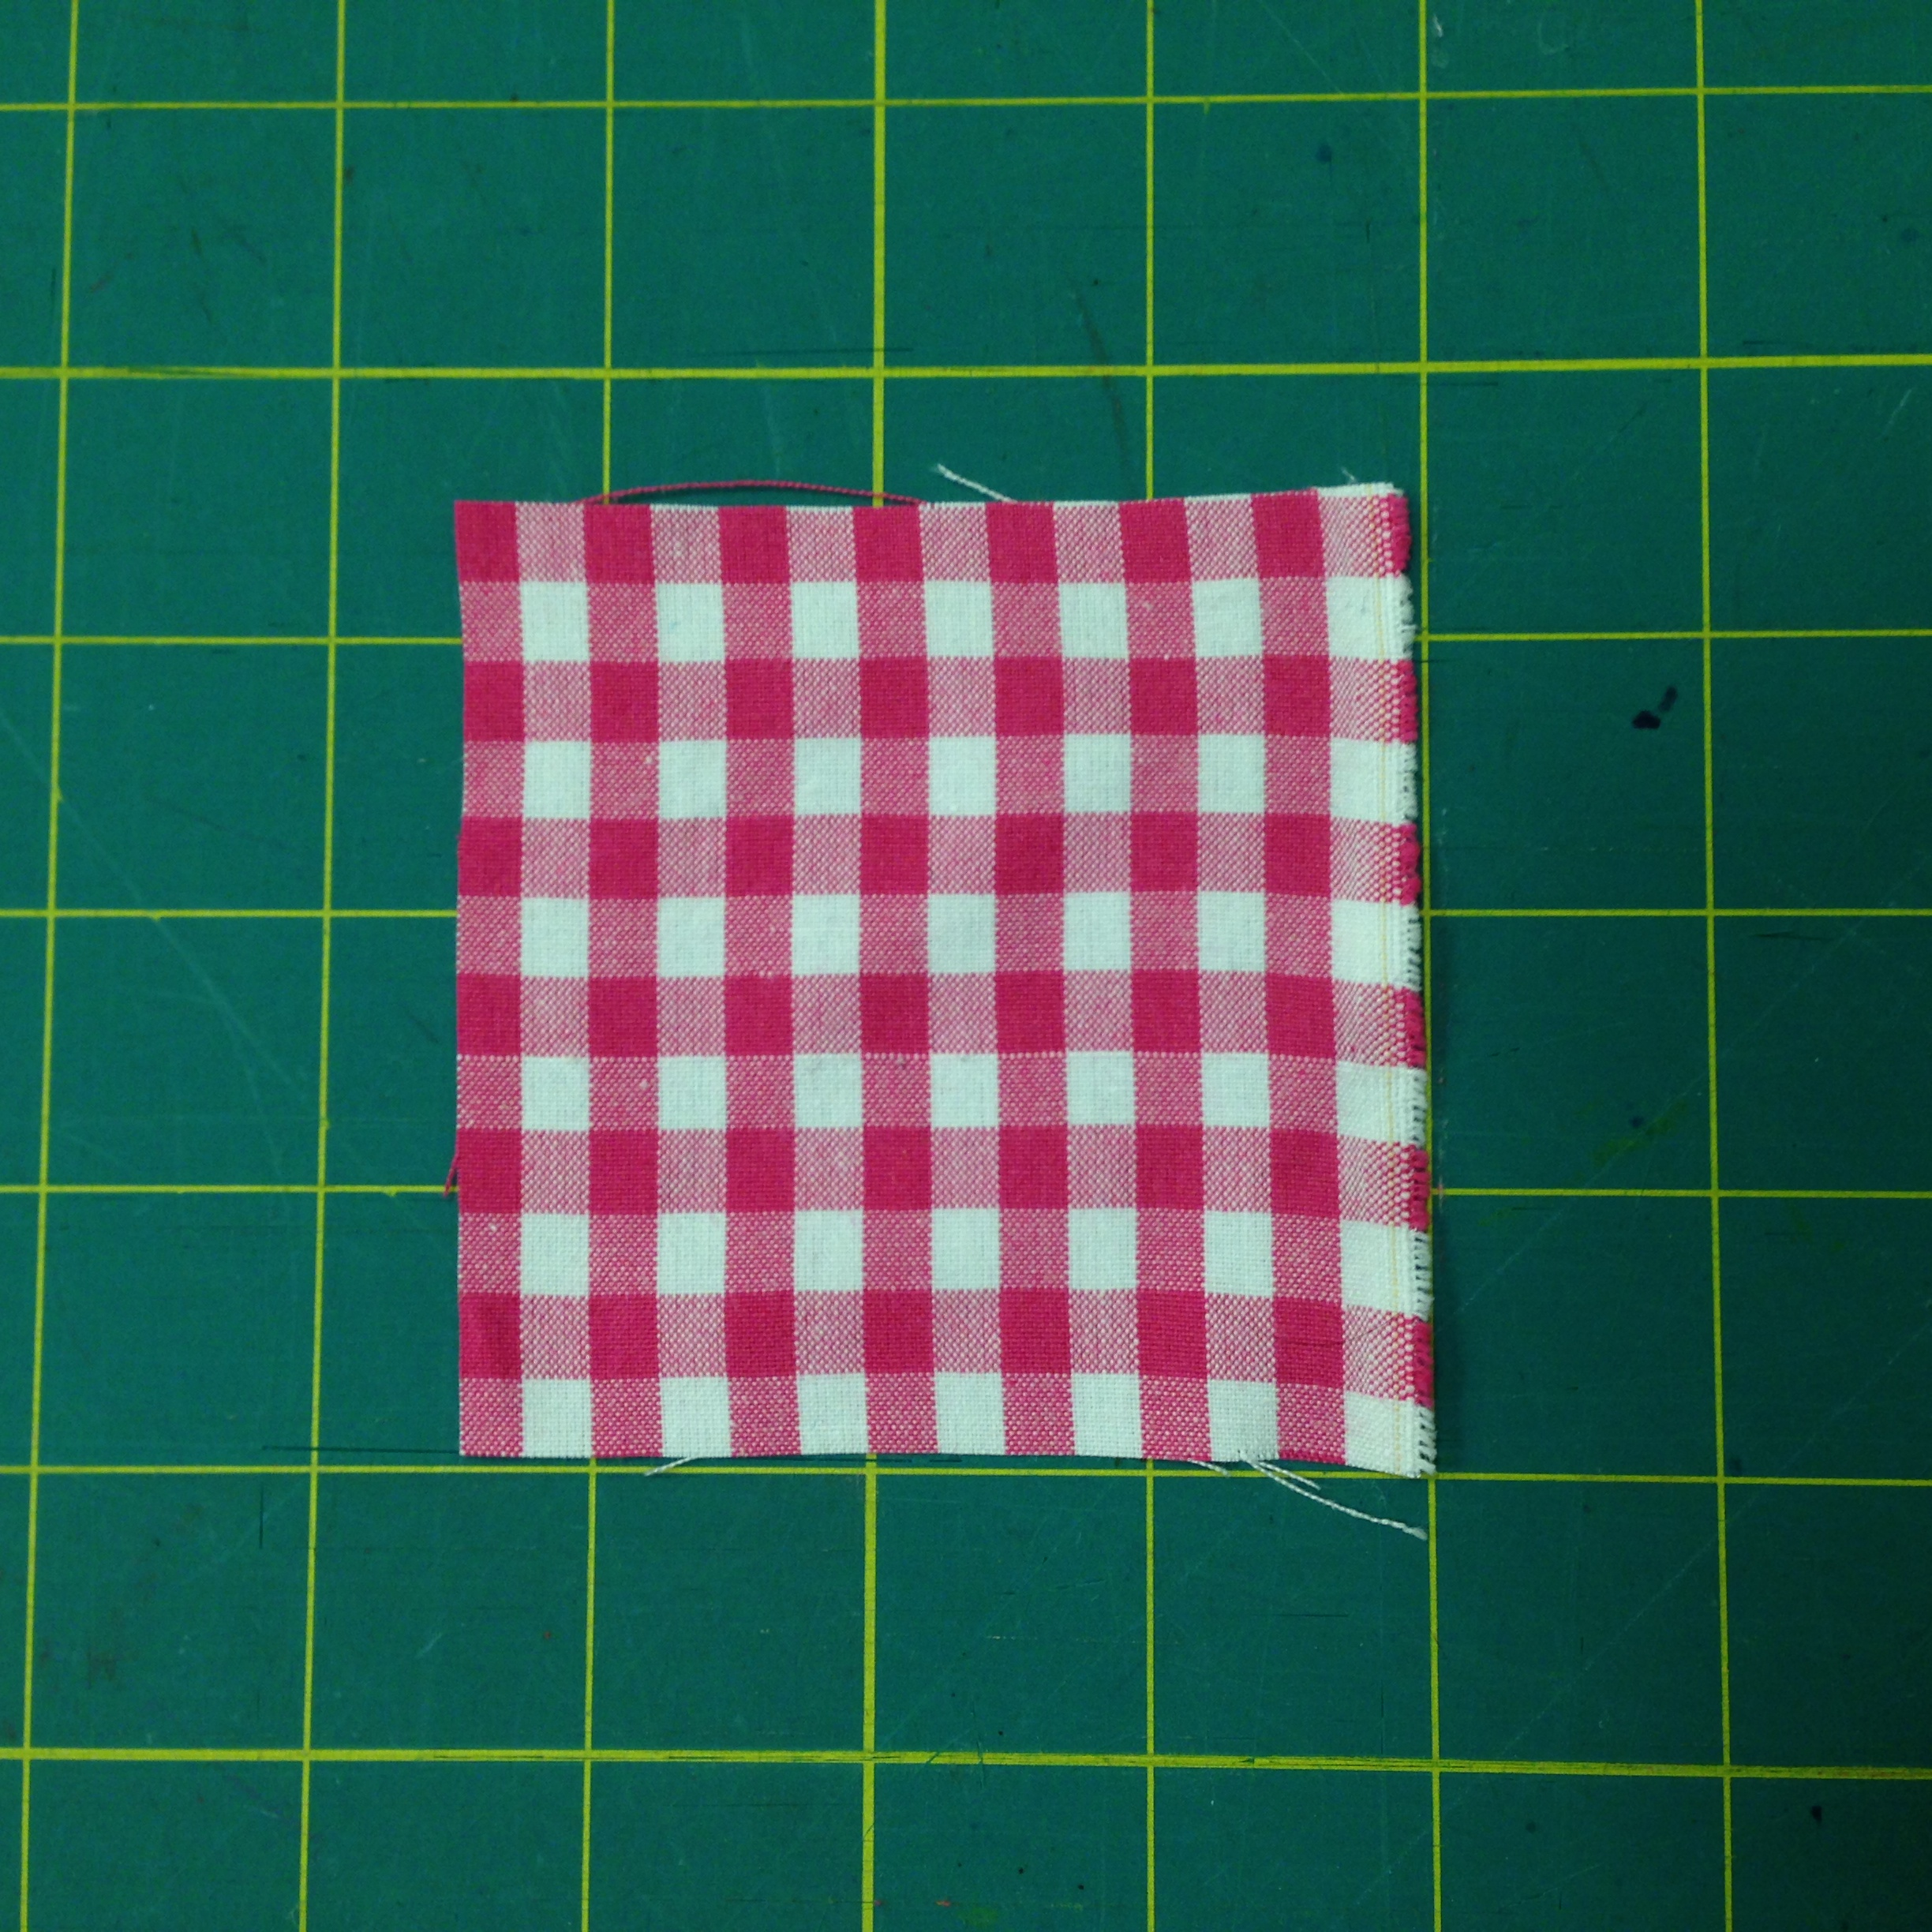 In gingham (a 'yarn dyed' fabric, meaning that the stripes are made from weaving different color yarns, not printed) it is easy to see if the grain is in alignment.